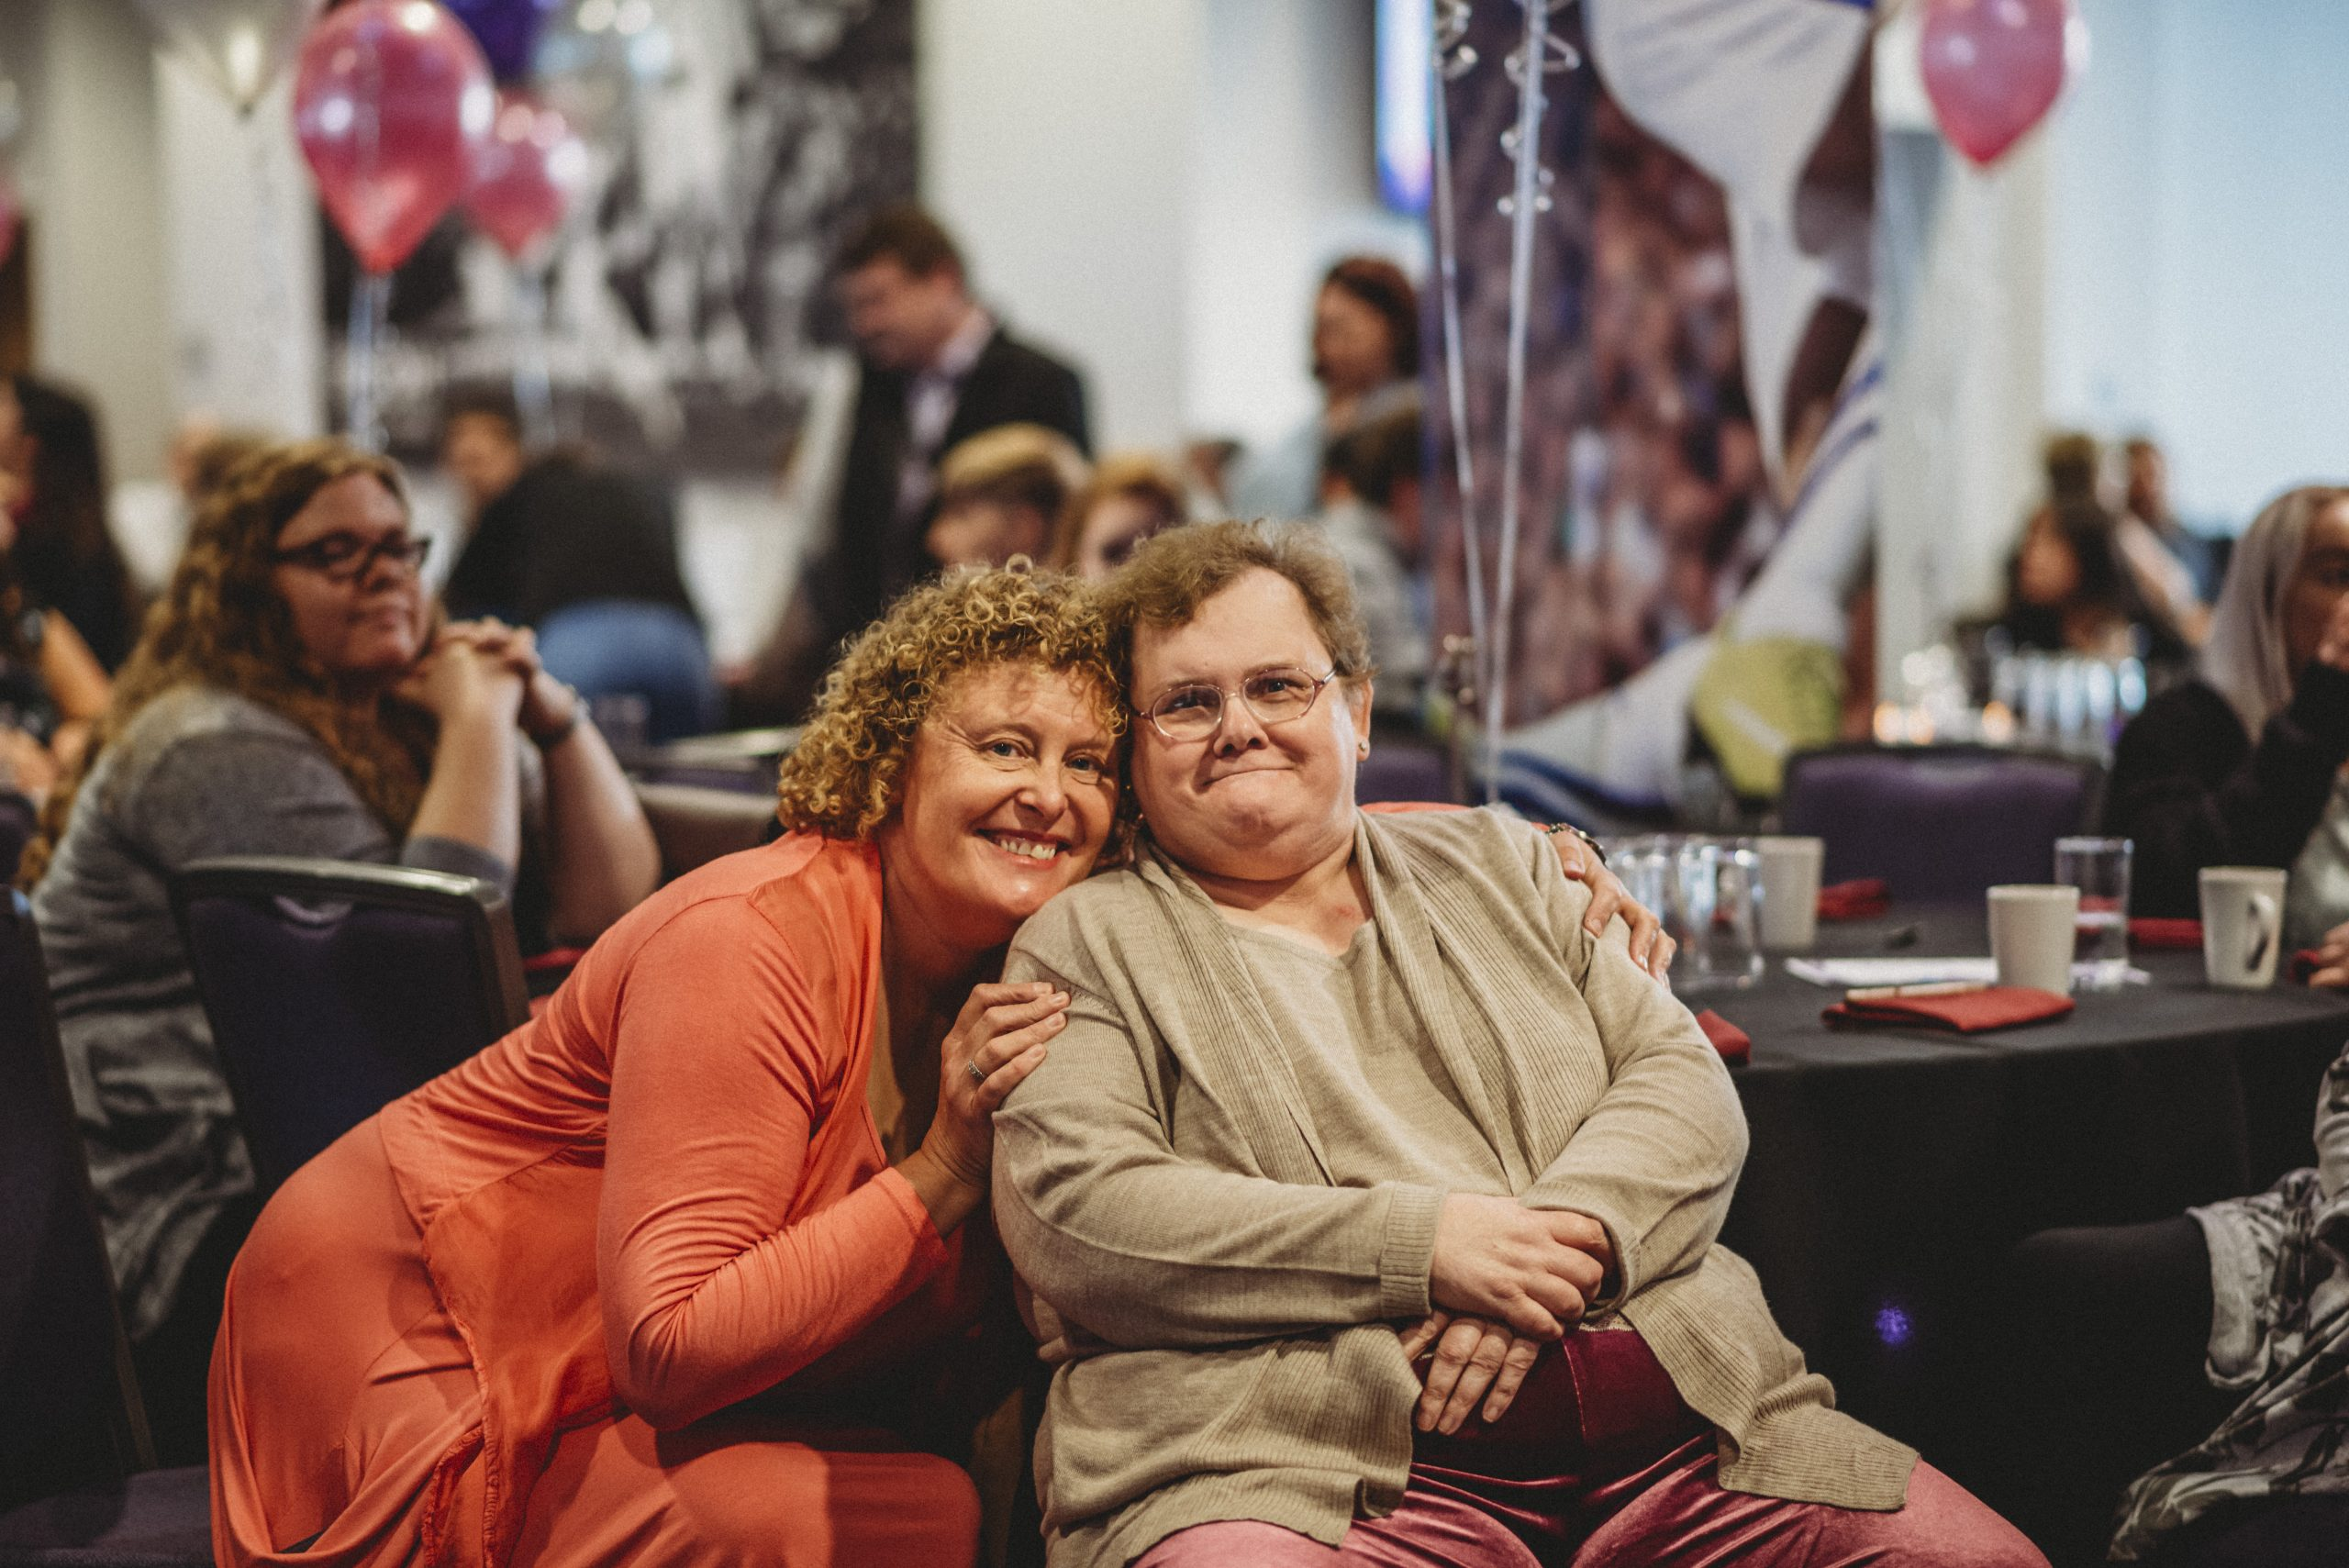 Staff member and person supported smile at the camera at our mirus stars event